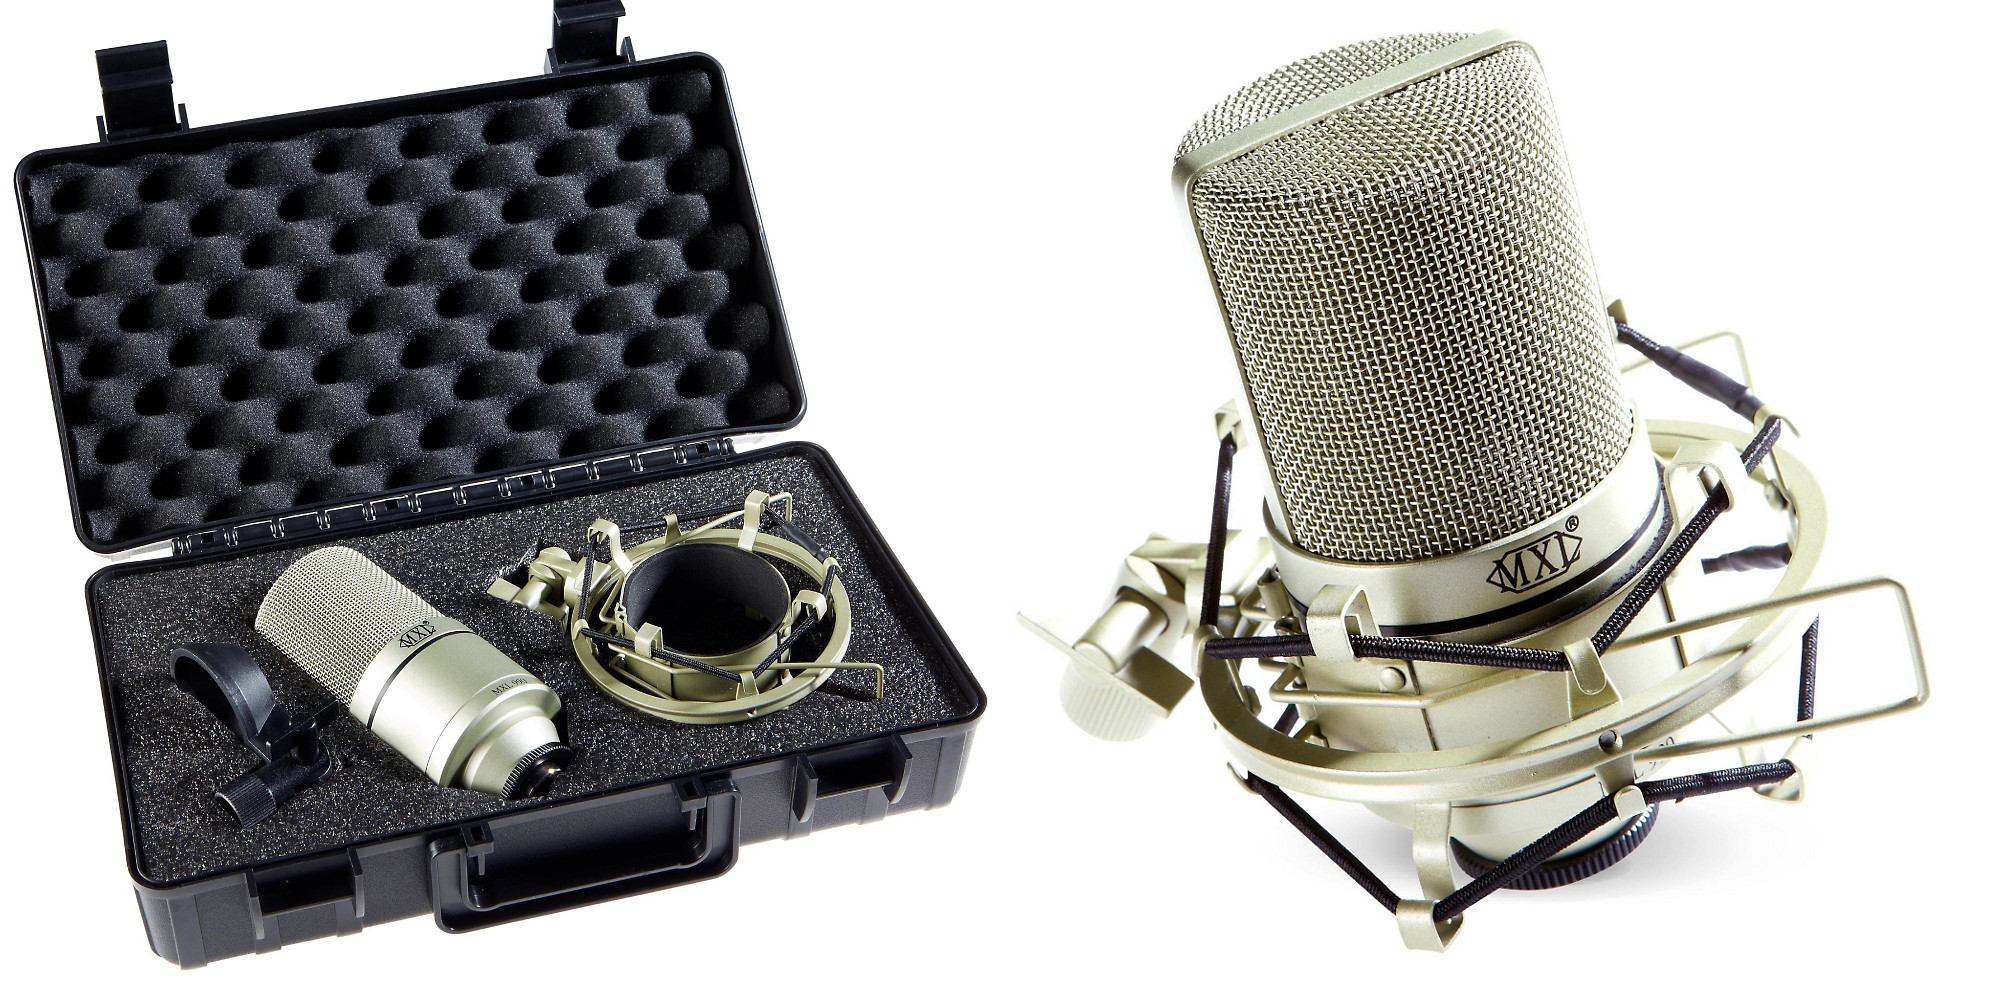 The MXL 990 Mic Kit Includes A Shock Mount, Carrying Case